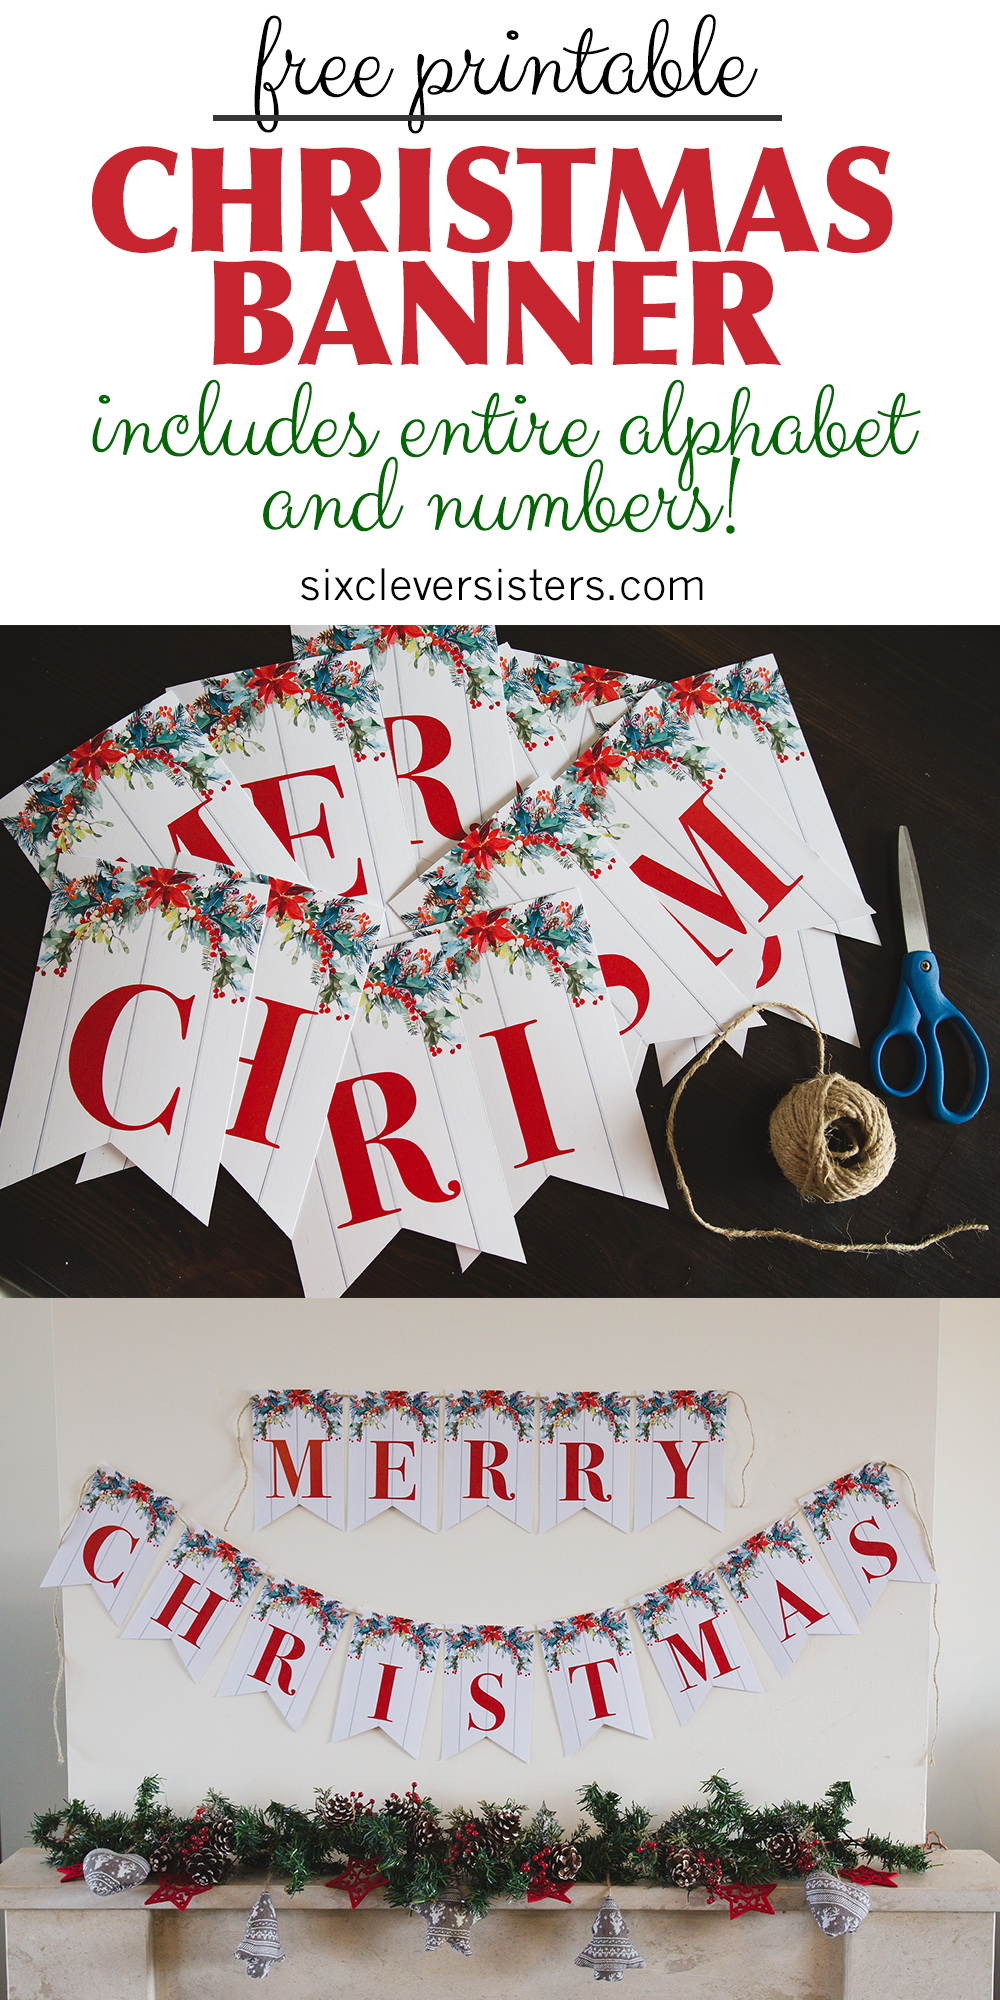 image relating to Merry Christmas Sign Printable referred to as Printable Merry Xmas Banner - 6 Sensible Sisters